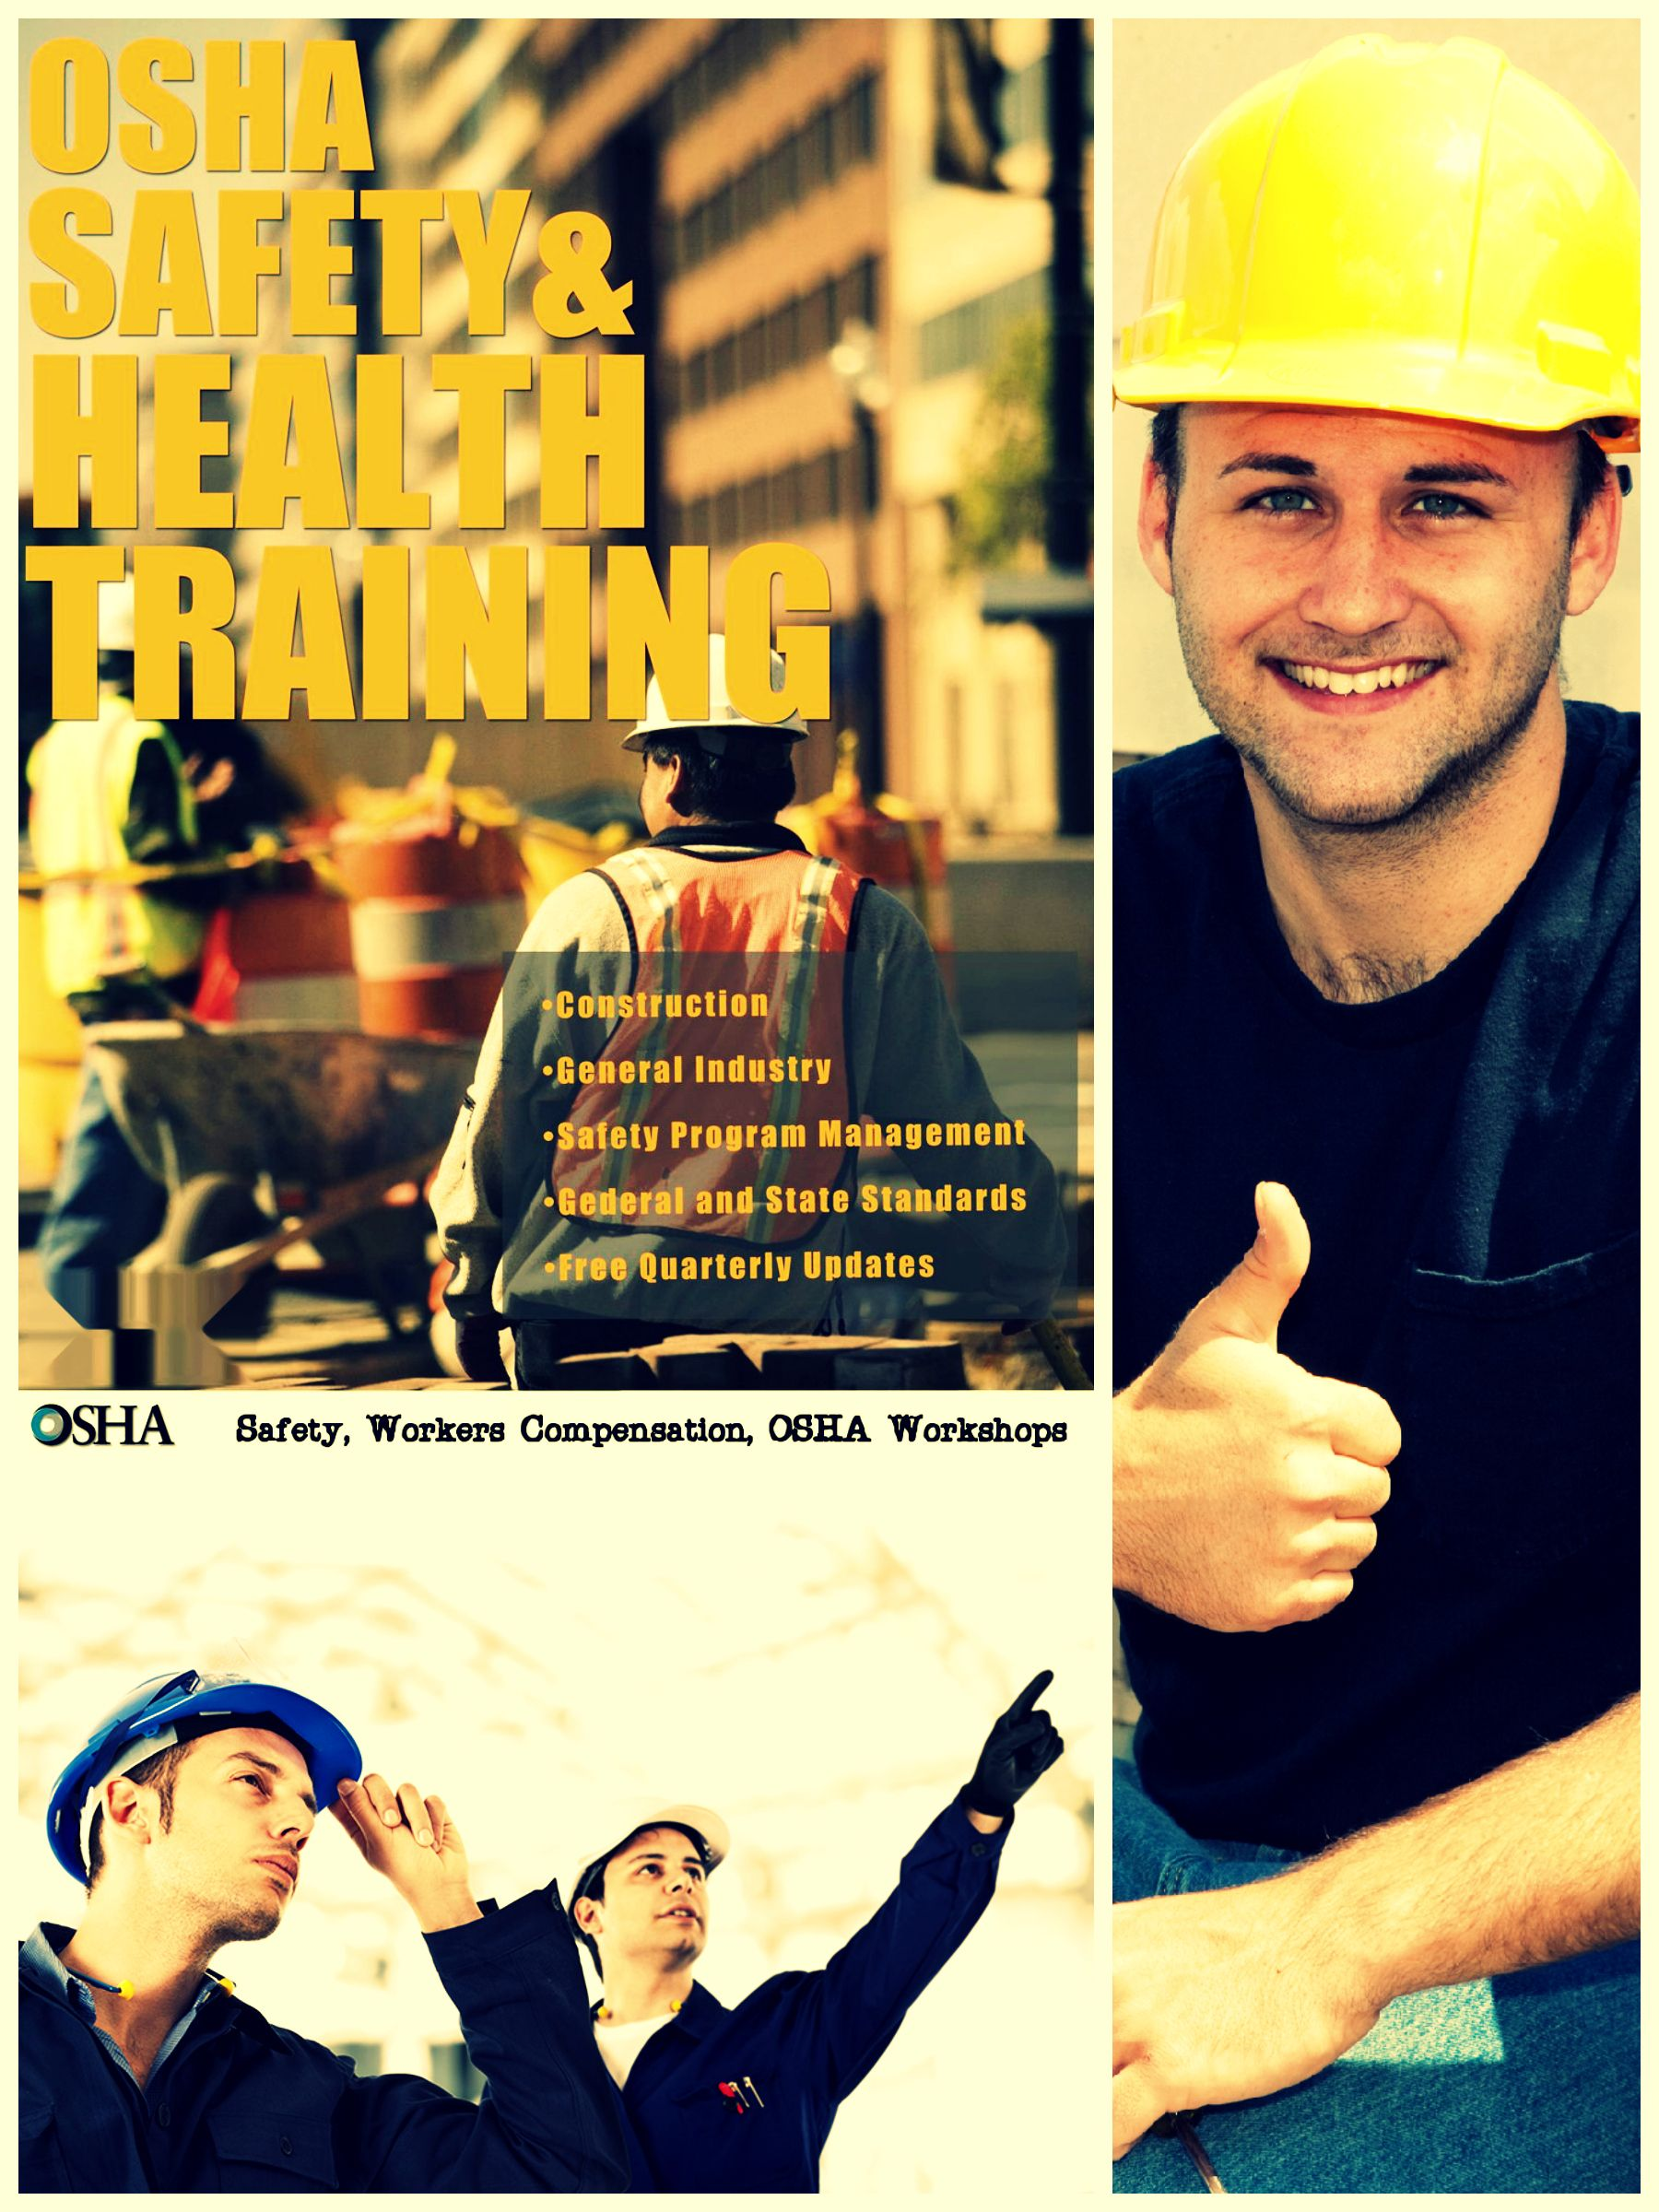 Safety, Workers Compensation, OSHA covers